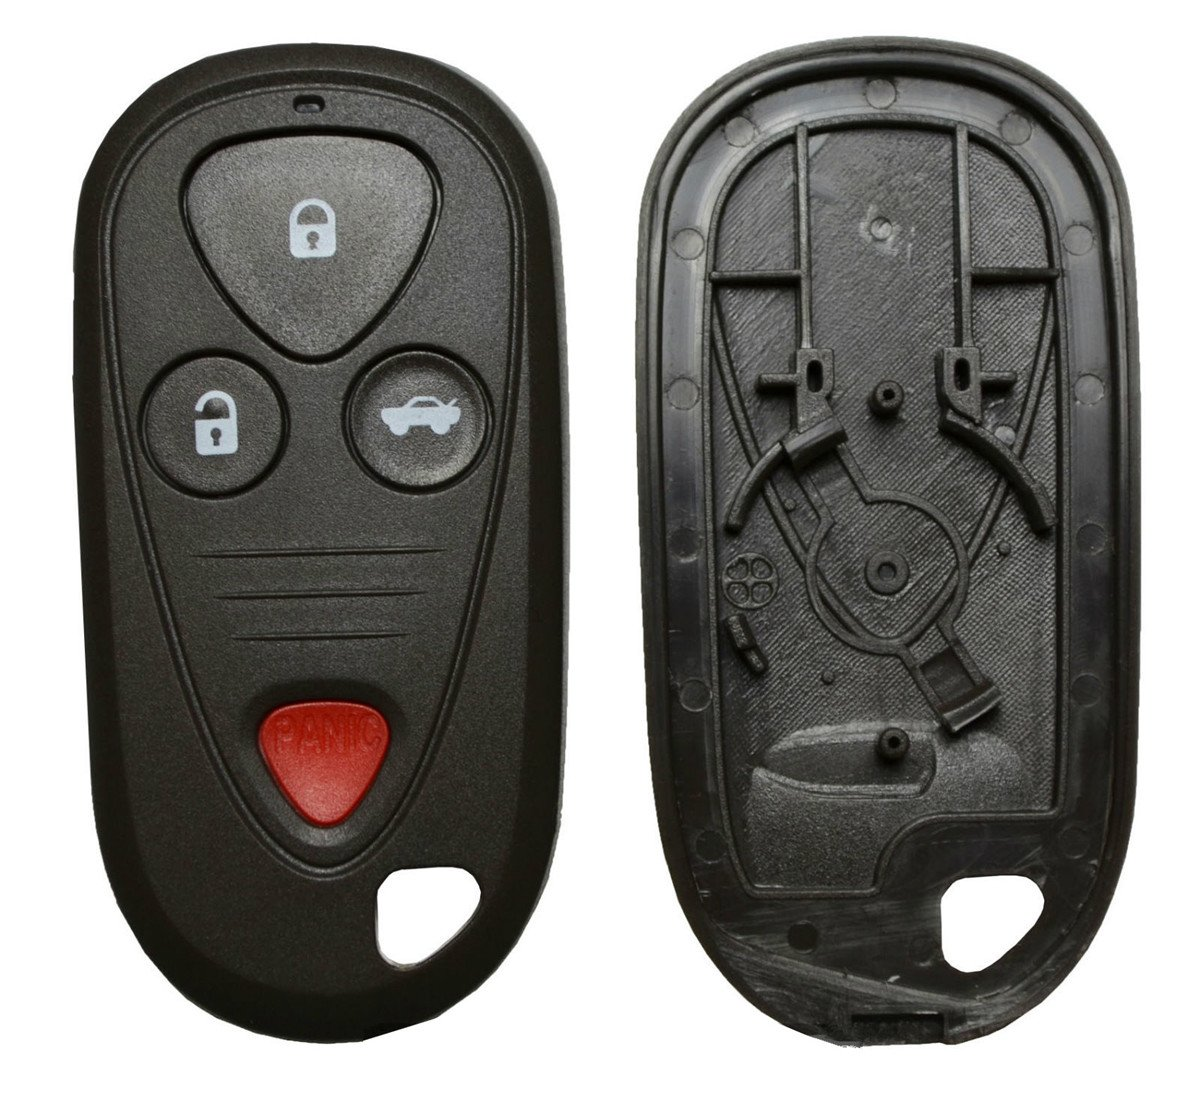 Cheap Acura Replacement Key Find Acura Replacement Key Deals On - Acura replacement key